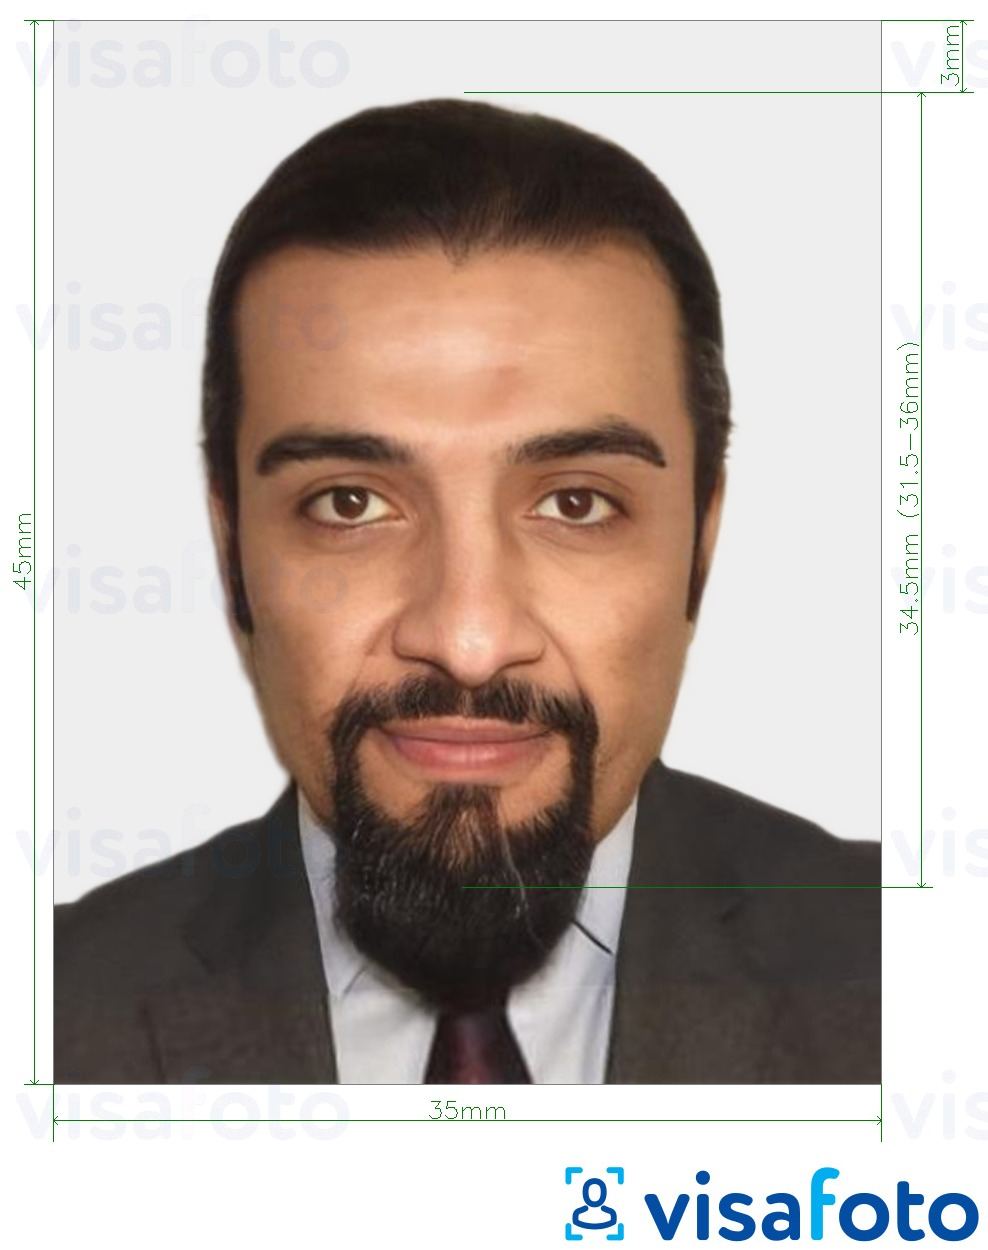 Example of photo for Mauritania visa 35x45 mm (3.5x4.5 cm) with exact size specification